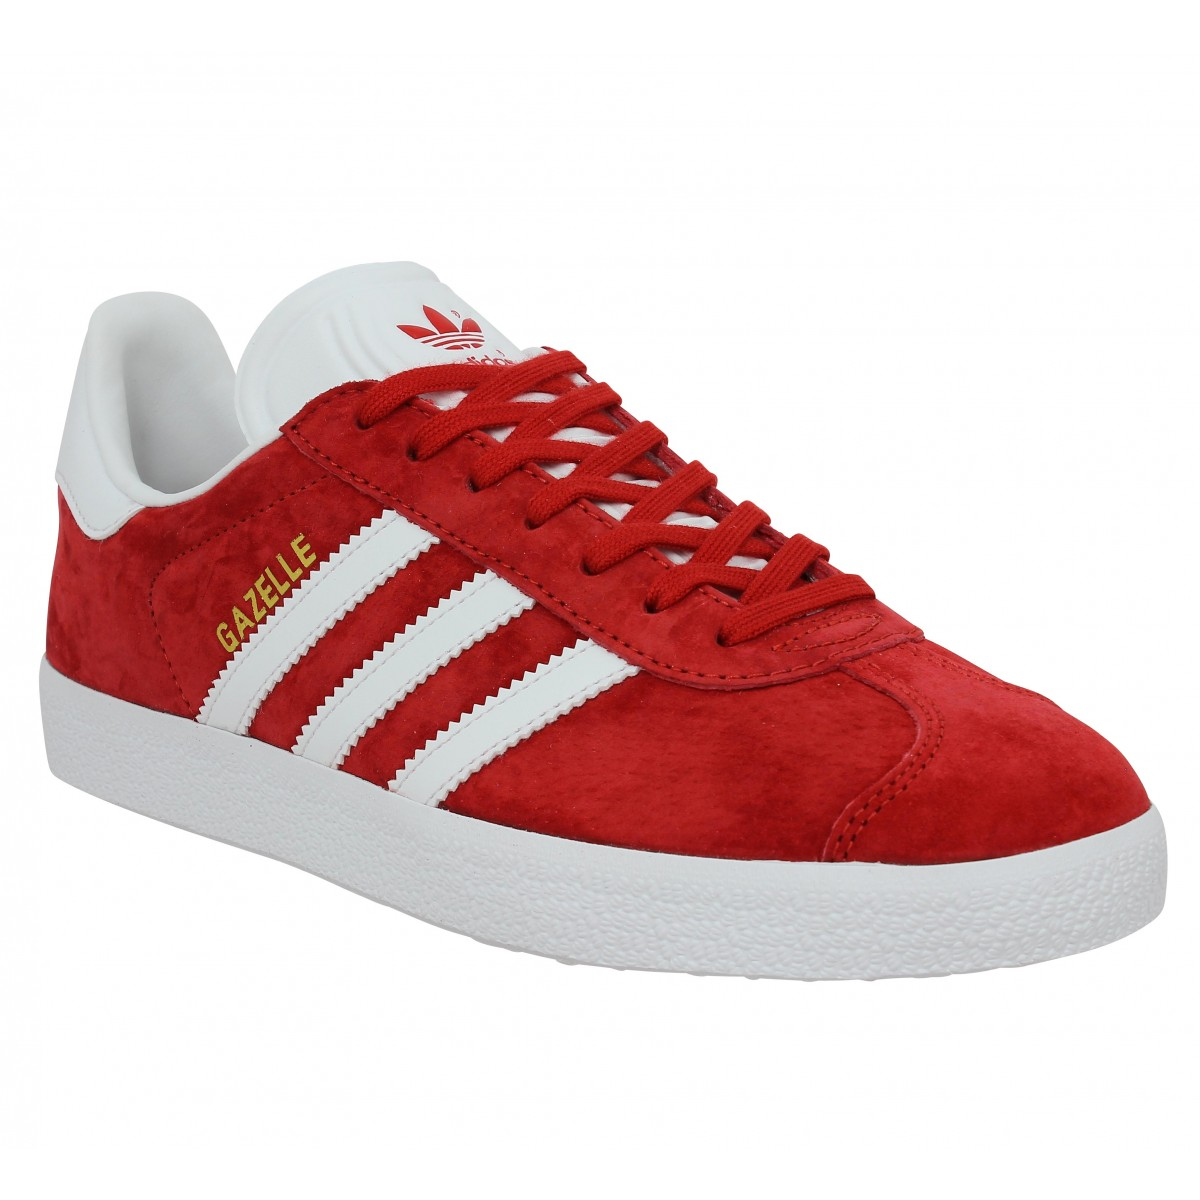 soldes adidas gazelle rouge femme fanny chaussures. Black Bedroom Furniture Sets. Home Design Ideas